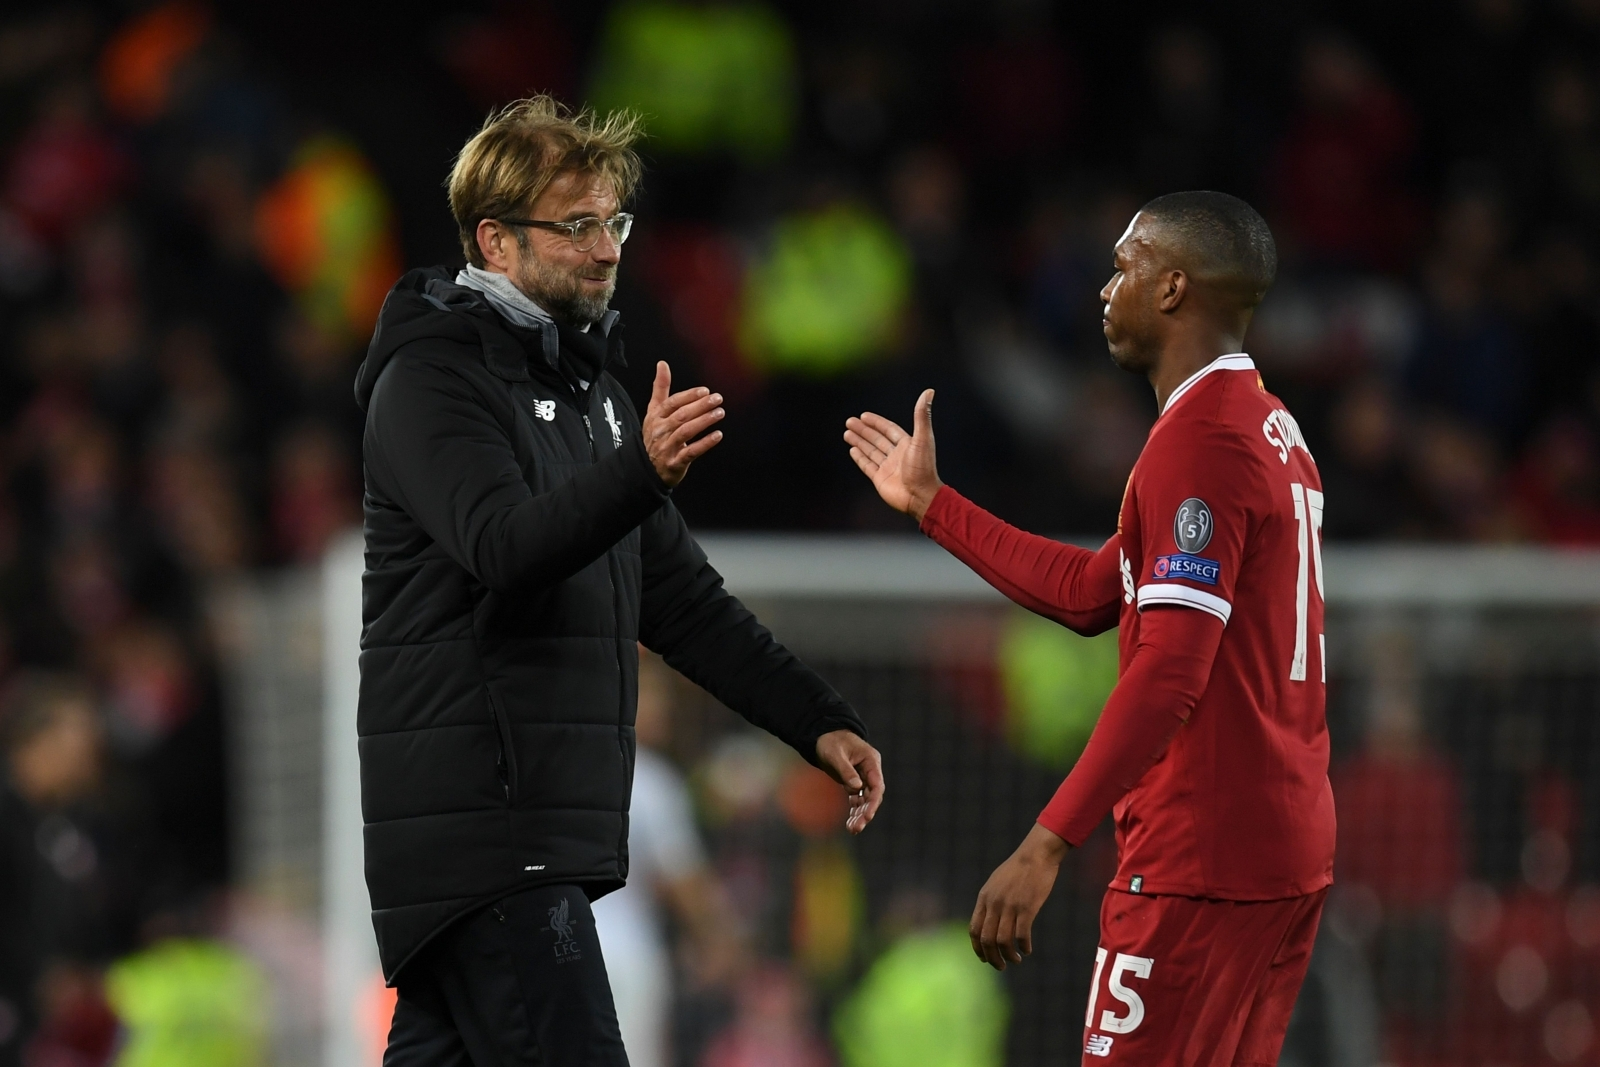 Jurgen Klopp and Daniel Sturridge